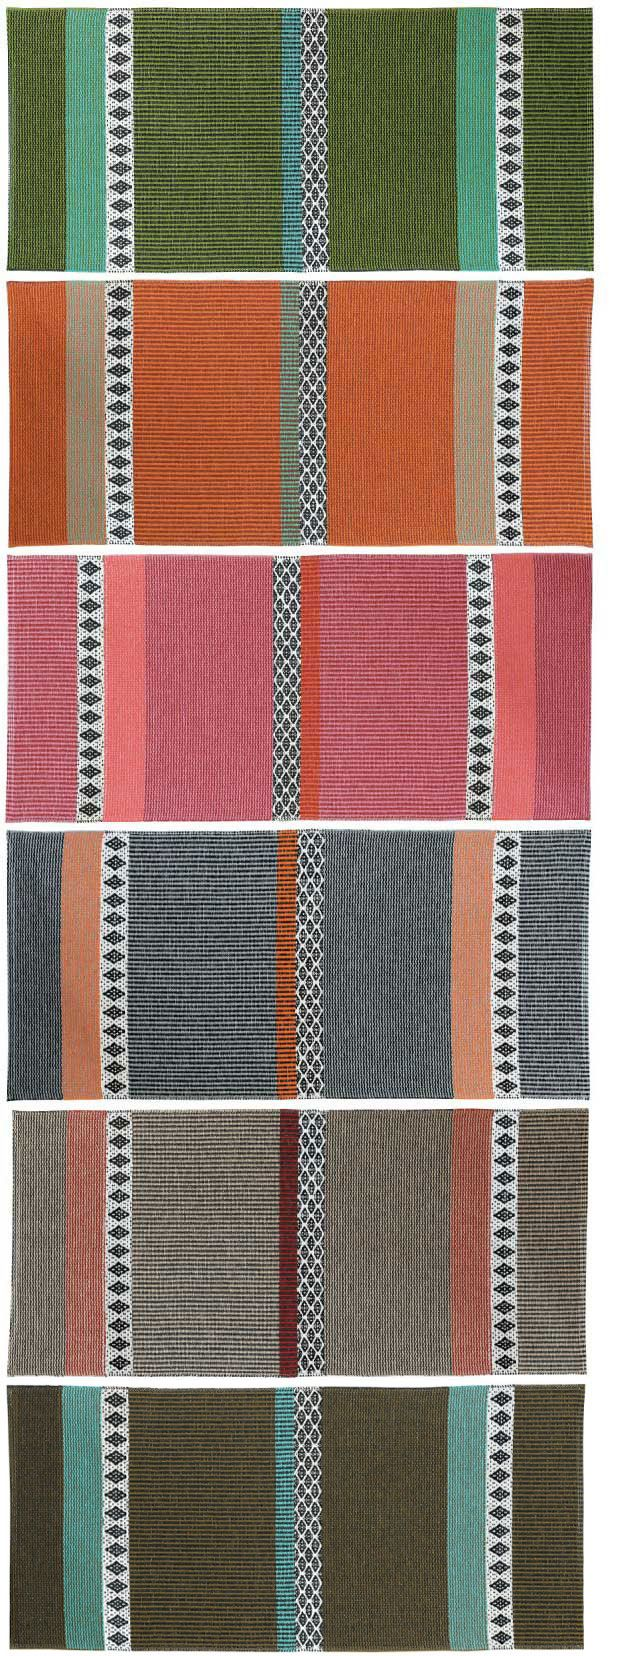 Stockholm Savanne Rug Machine Washable And Drip Dry 50% Recycled Plastic  Strips